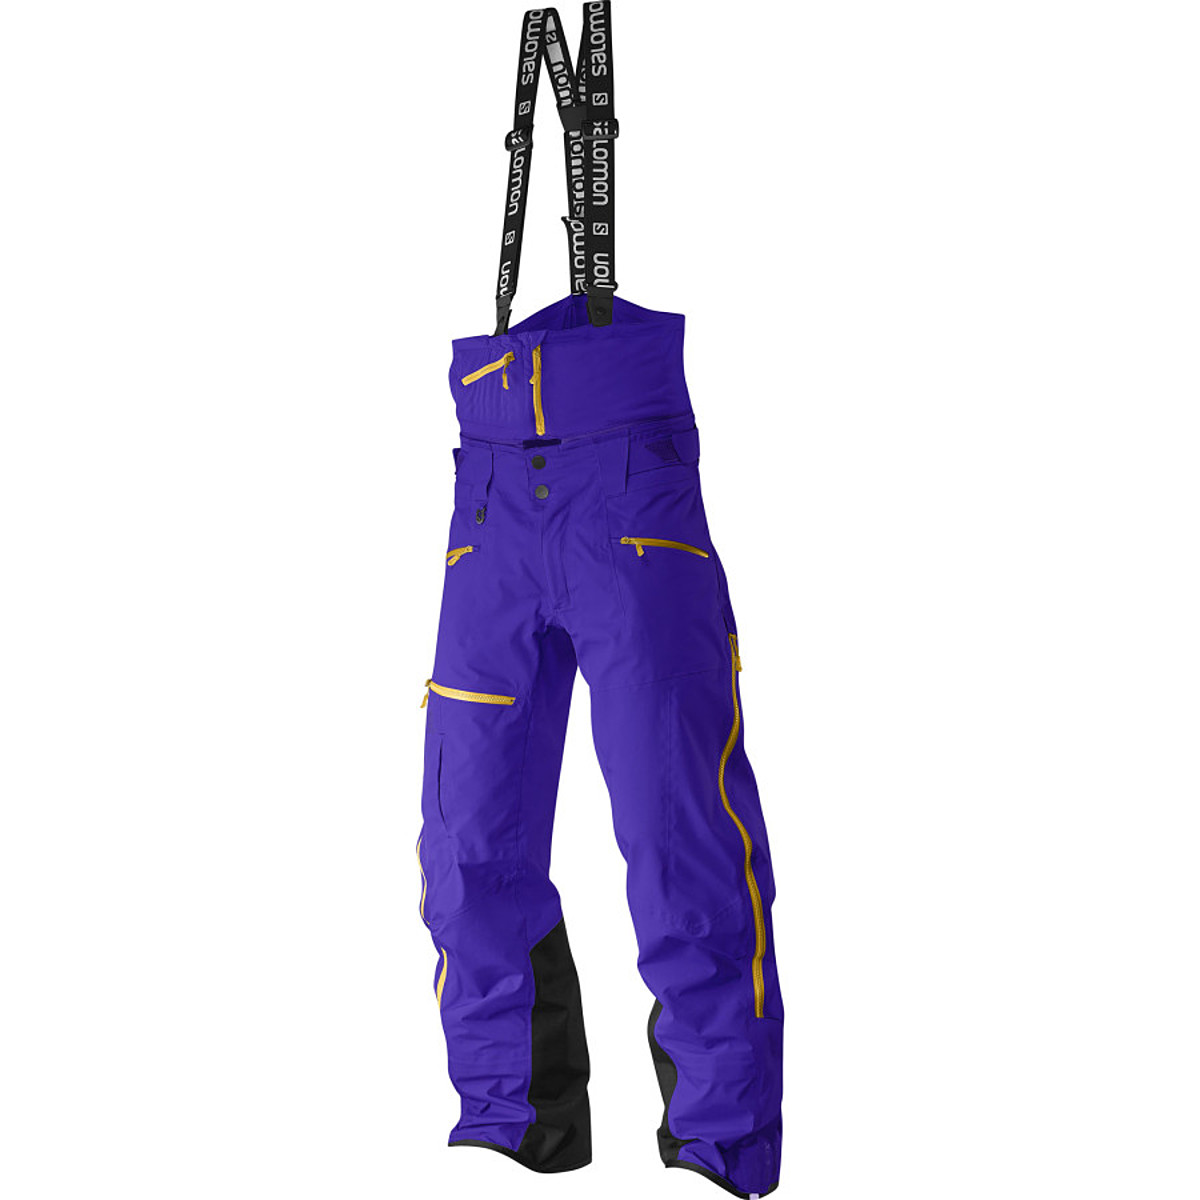 Salomon Soulquest BC GTX 3L Pant